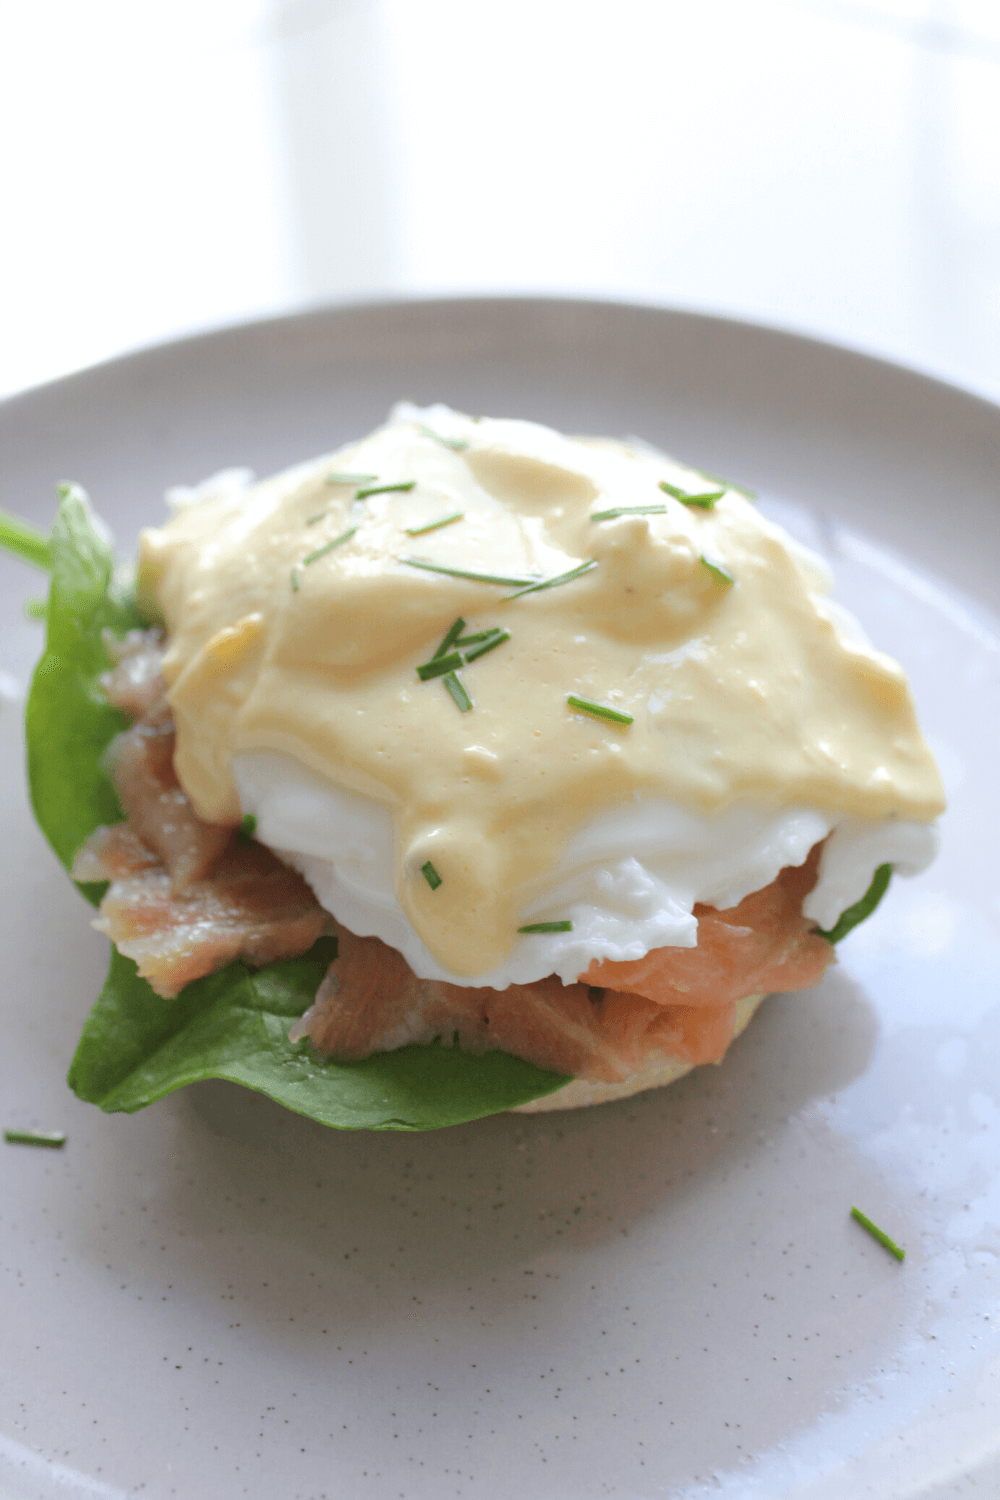 I love nothing more than an English muffin topped with a poached egg and drizzle with hollandaise sauce for breakfast.  Unfortunately hollandaise sauce really isn't the healthiest of sauces thanks to all that butter, but thankfully this healthier hollandaise sauce is the perfect alternative.